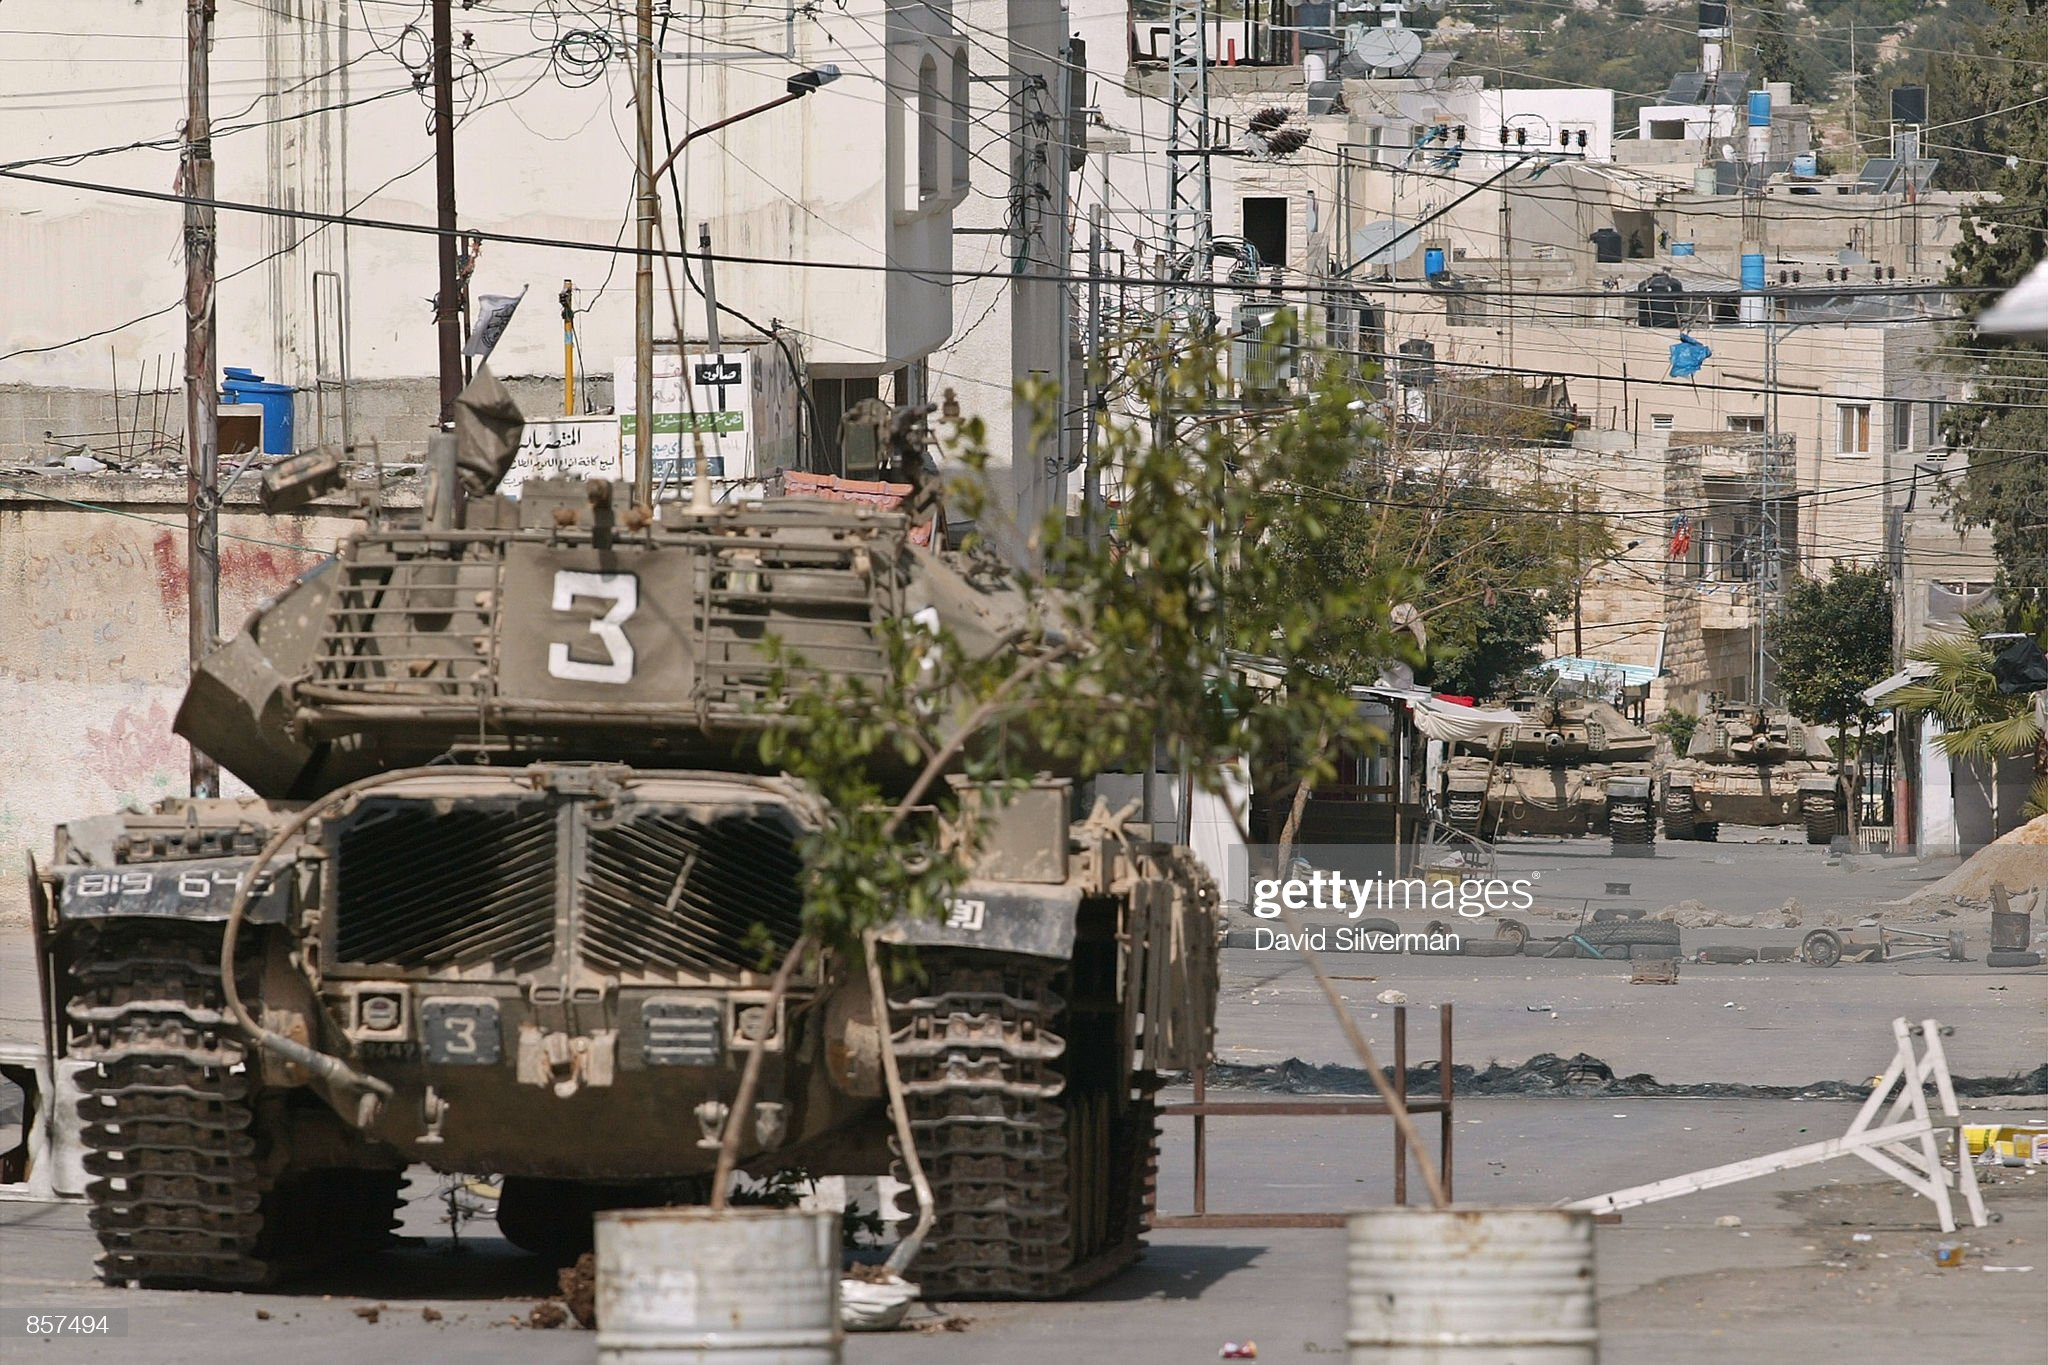 https://media.gettyimages.com/photos/israeli-army-tanks-control-both-sides-of-the-main-road-march-7-2002-picture-id857494?s=2048x2048